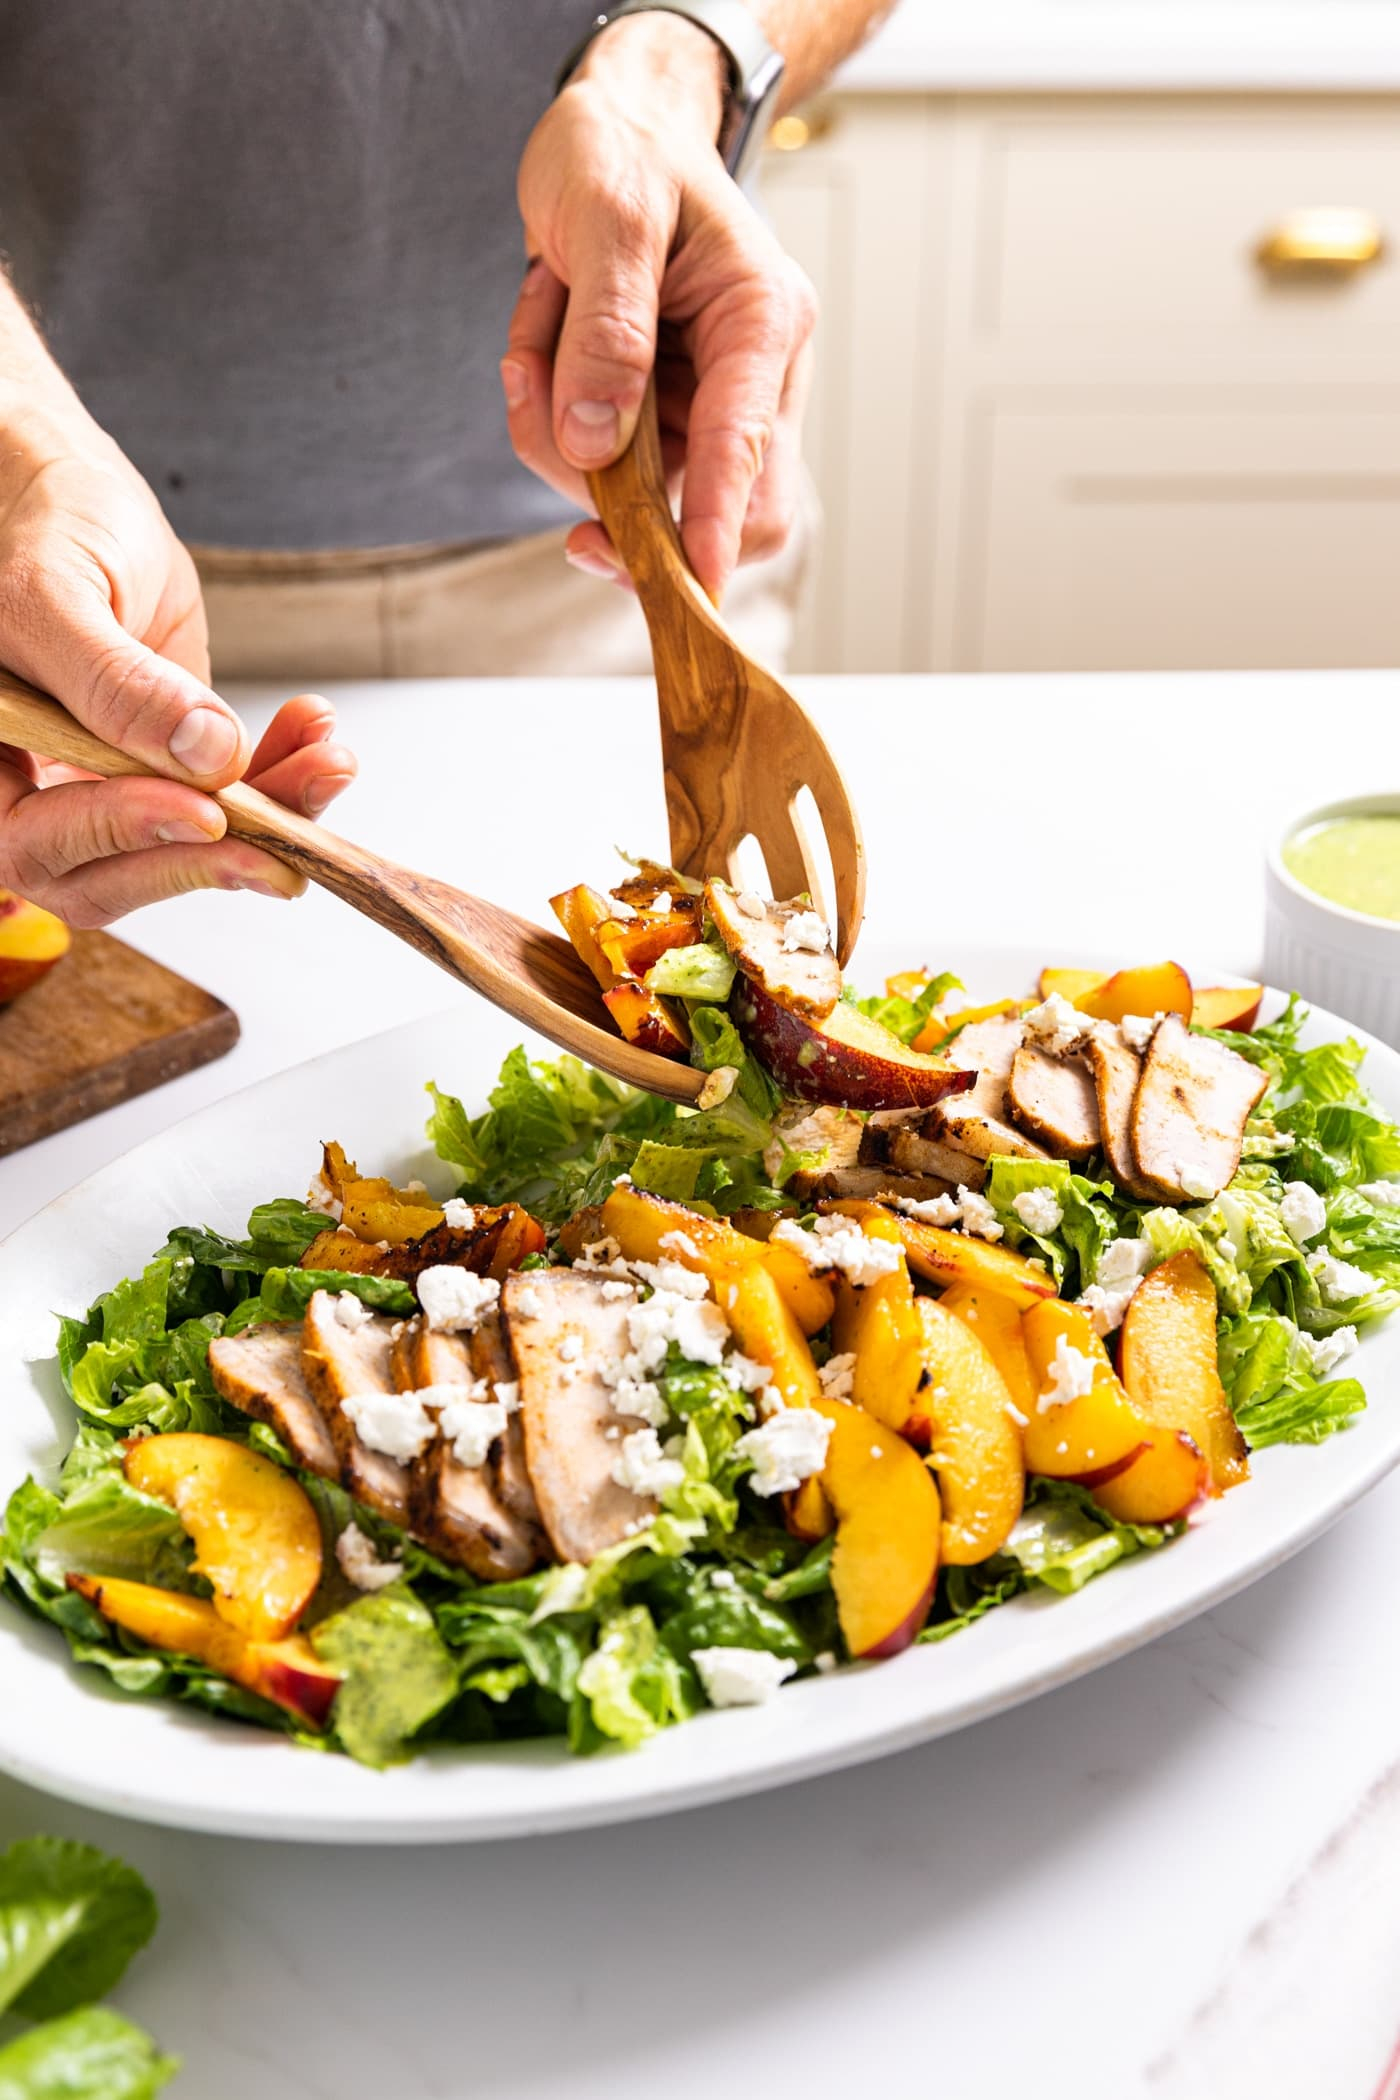 Two hands holding wooden tongs scooping up serving of salad from white platter filled with slices of nectarine and pork